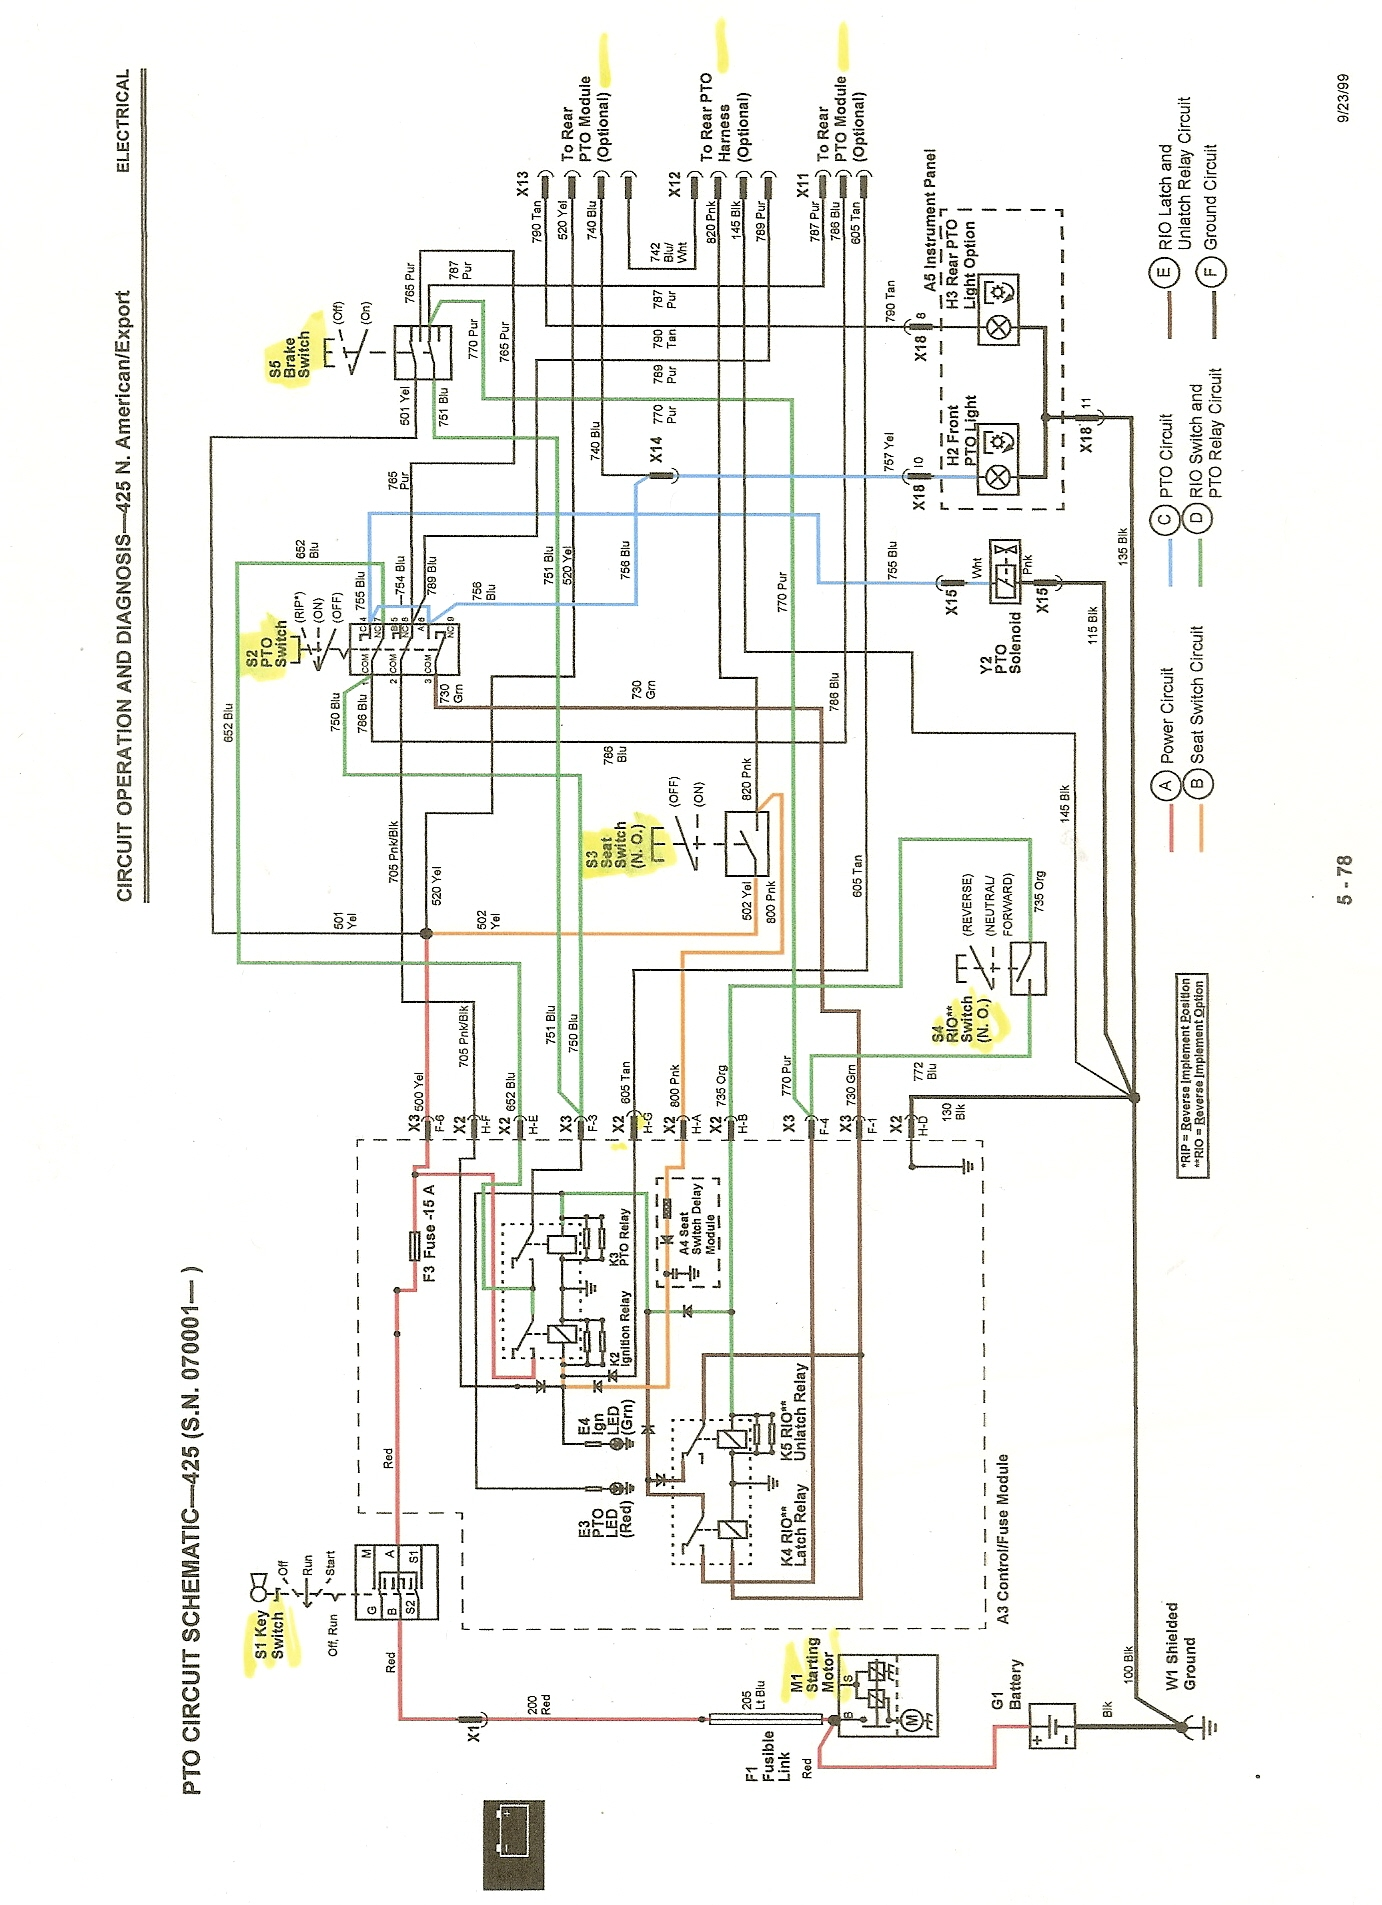 Attachment on Fuse Panel Wiring Diagram